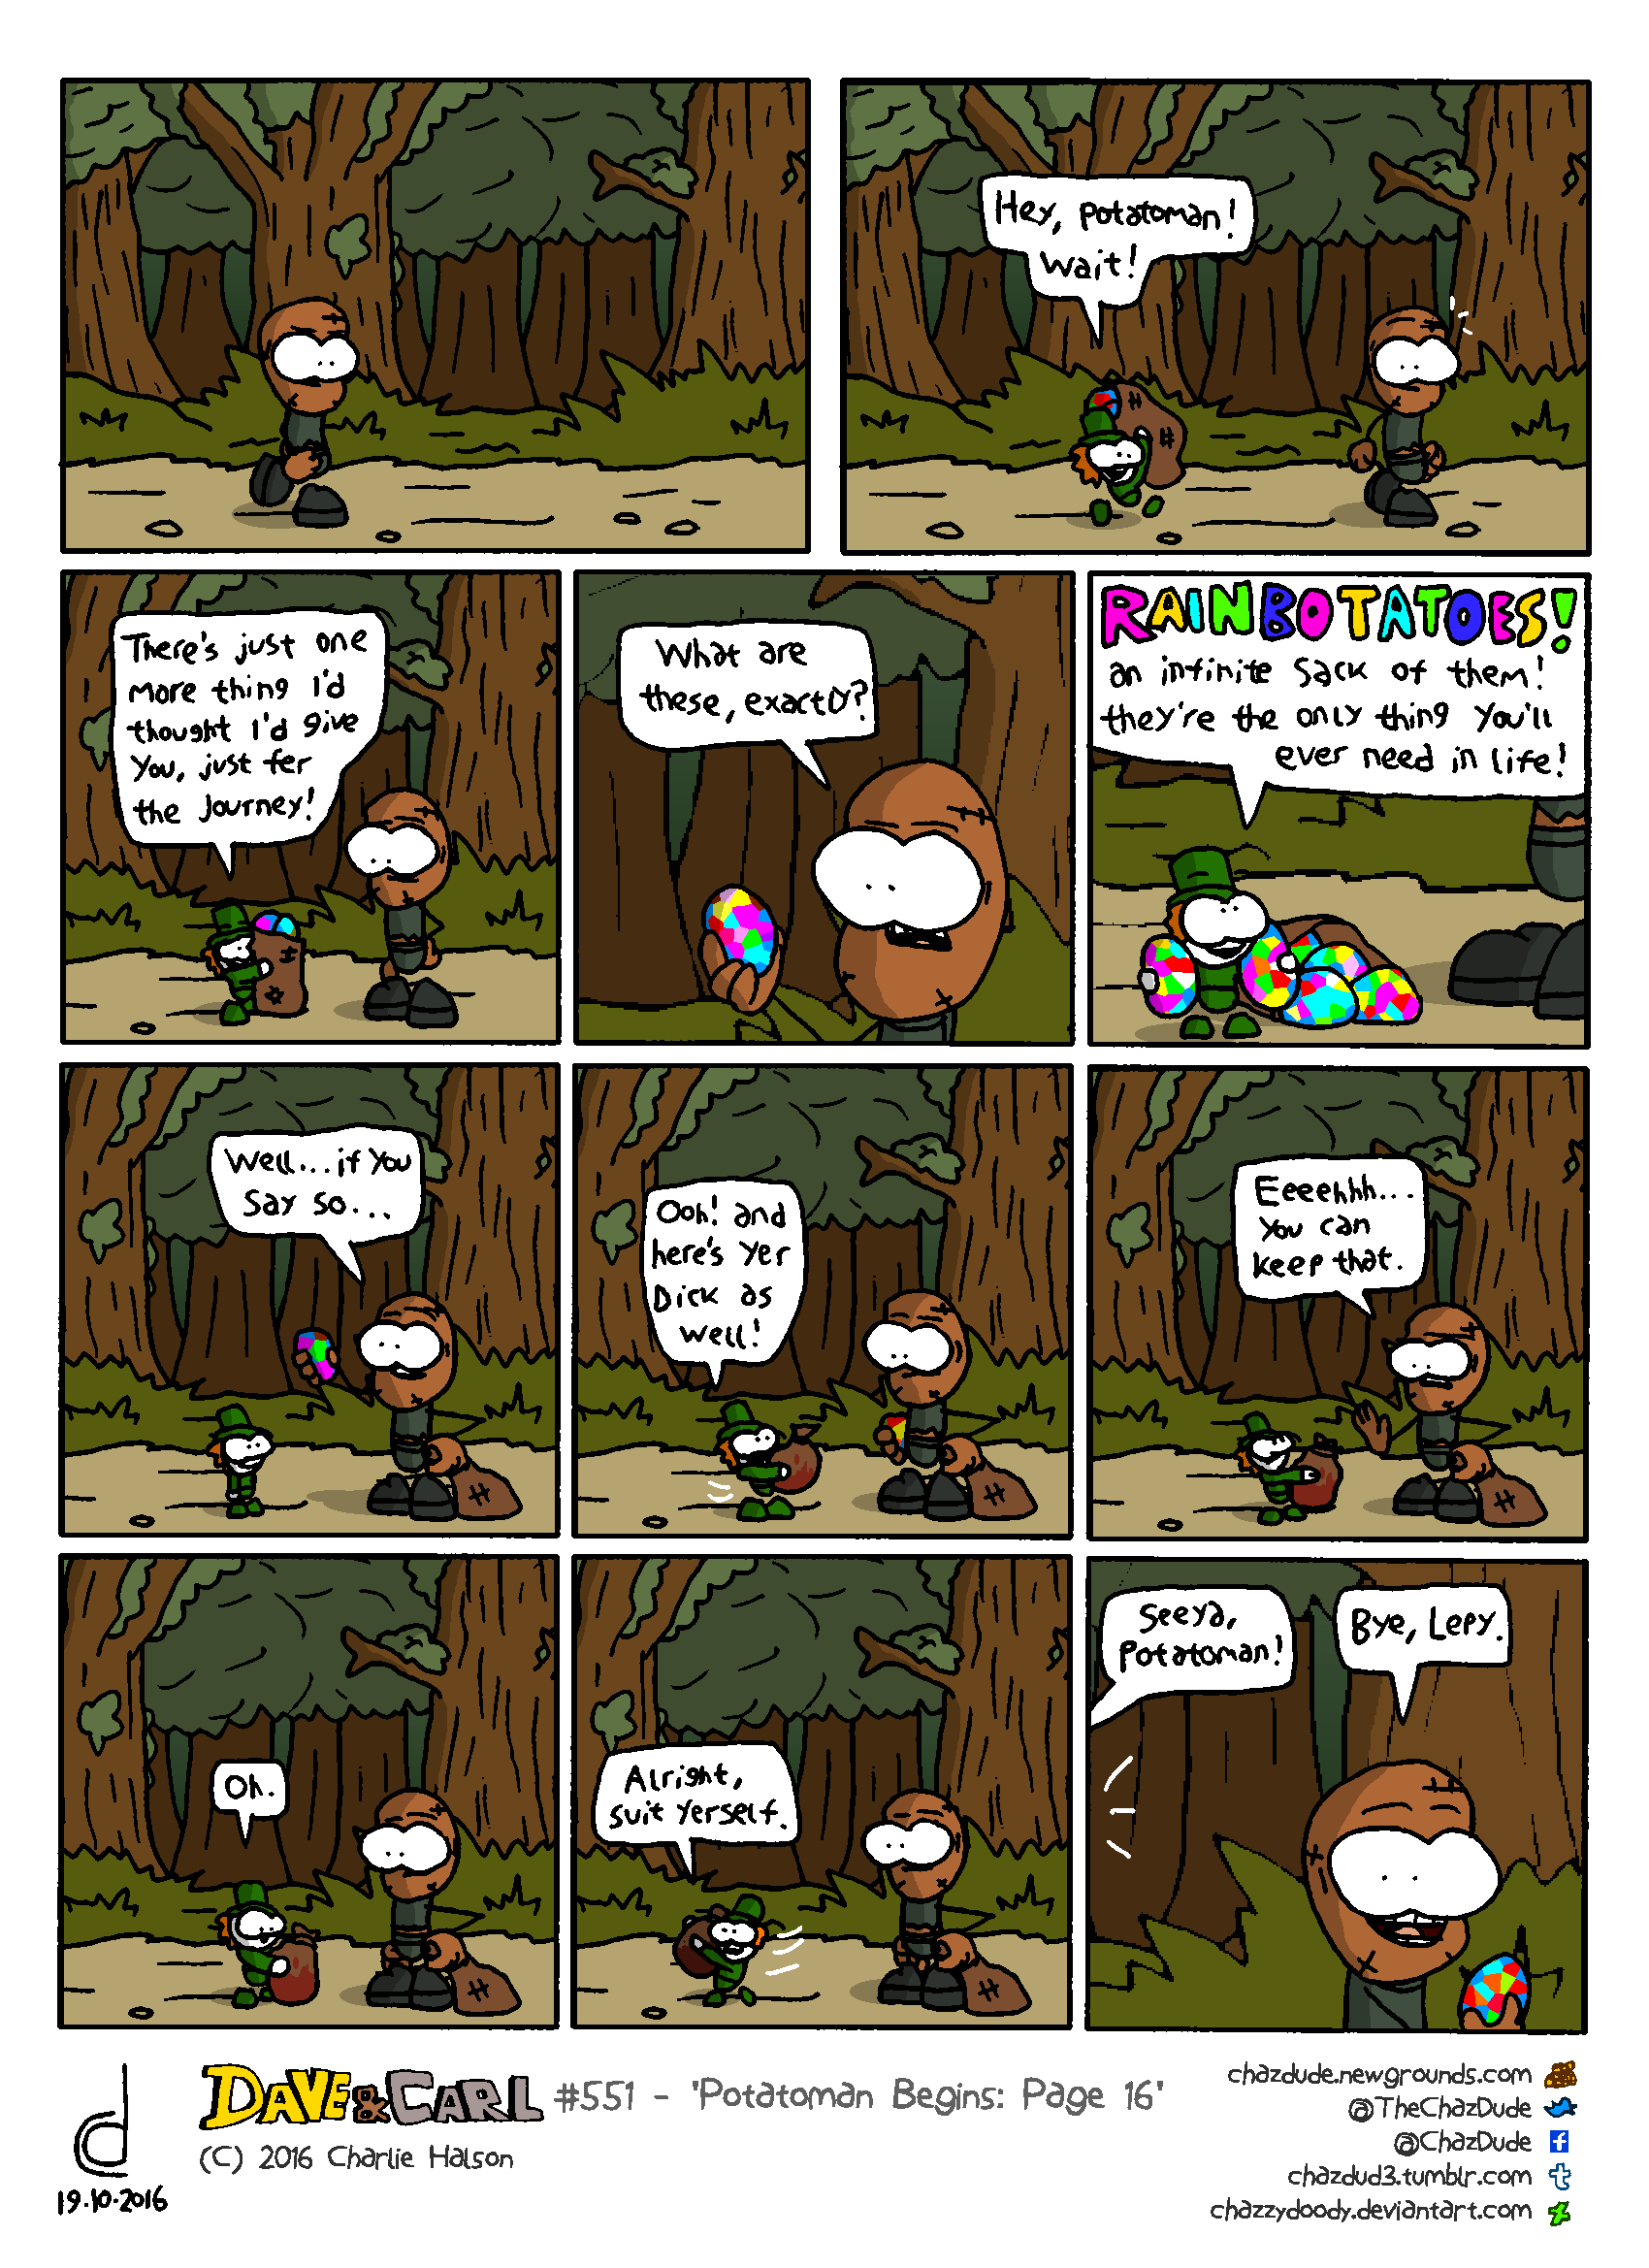 Potatoman Begins: Page 16